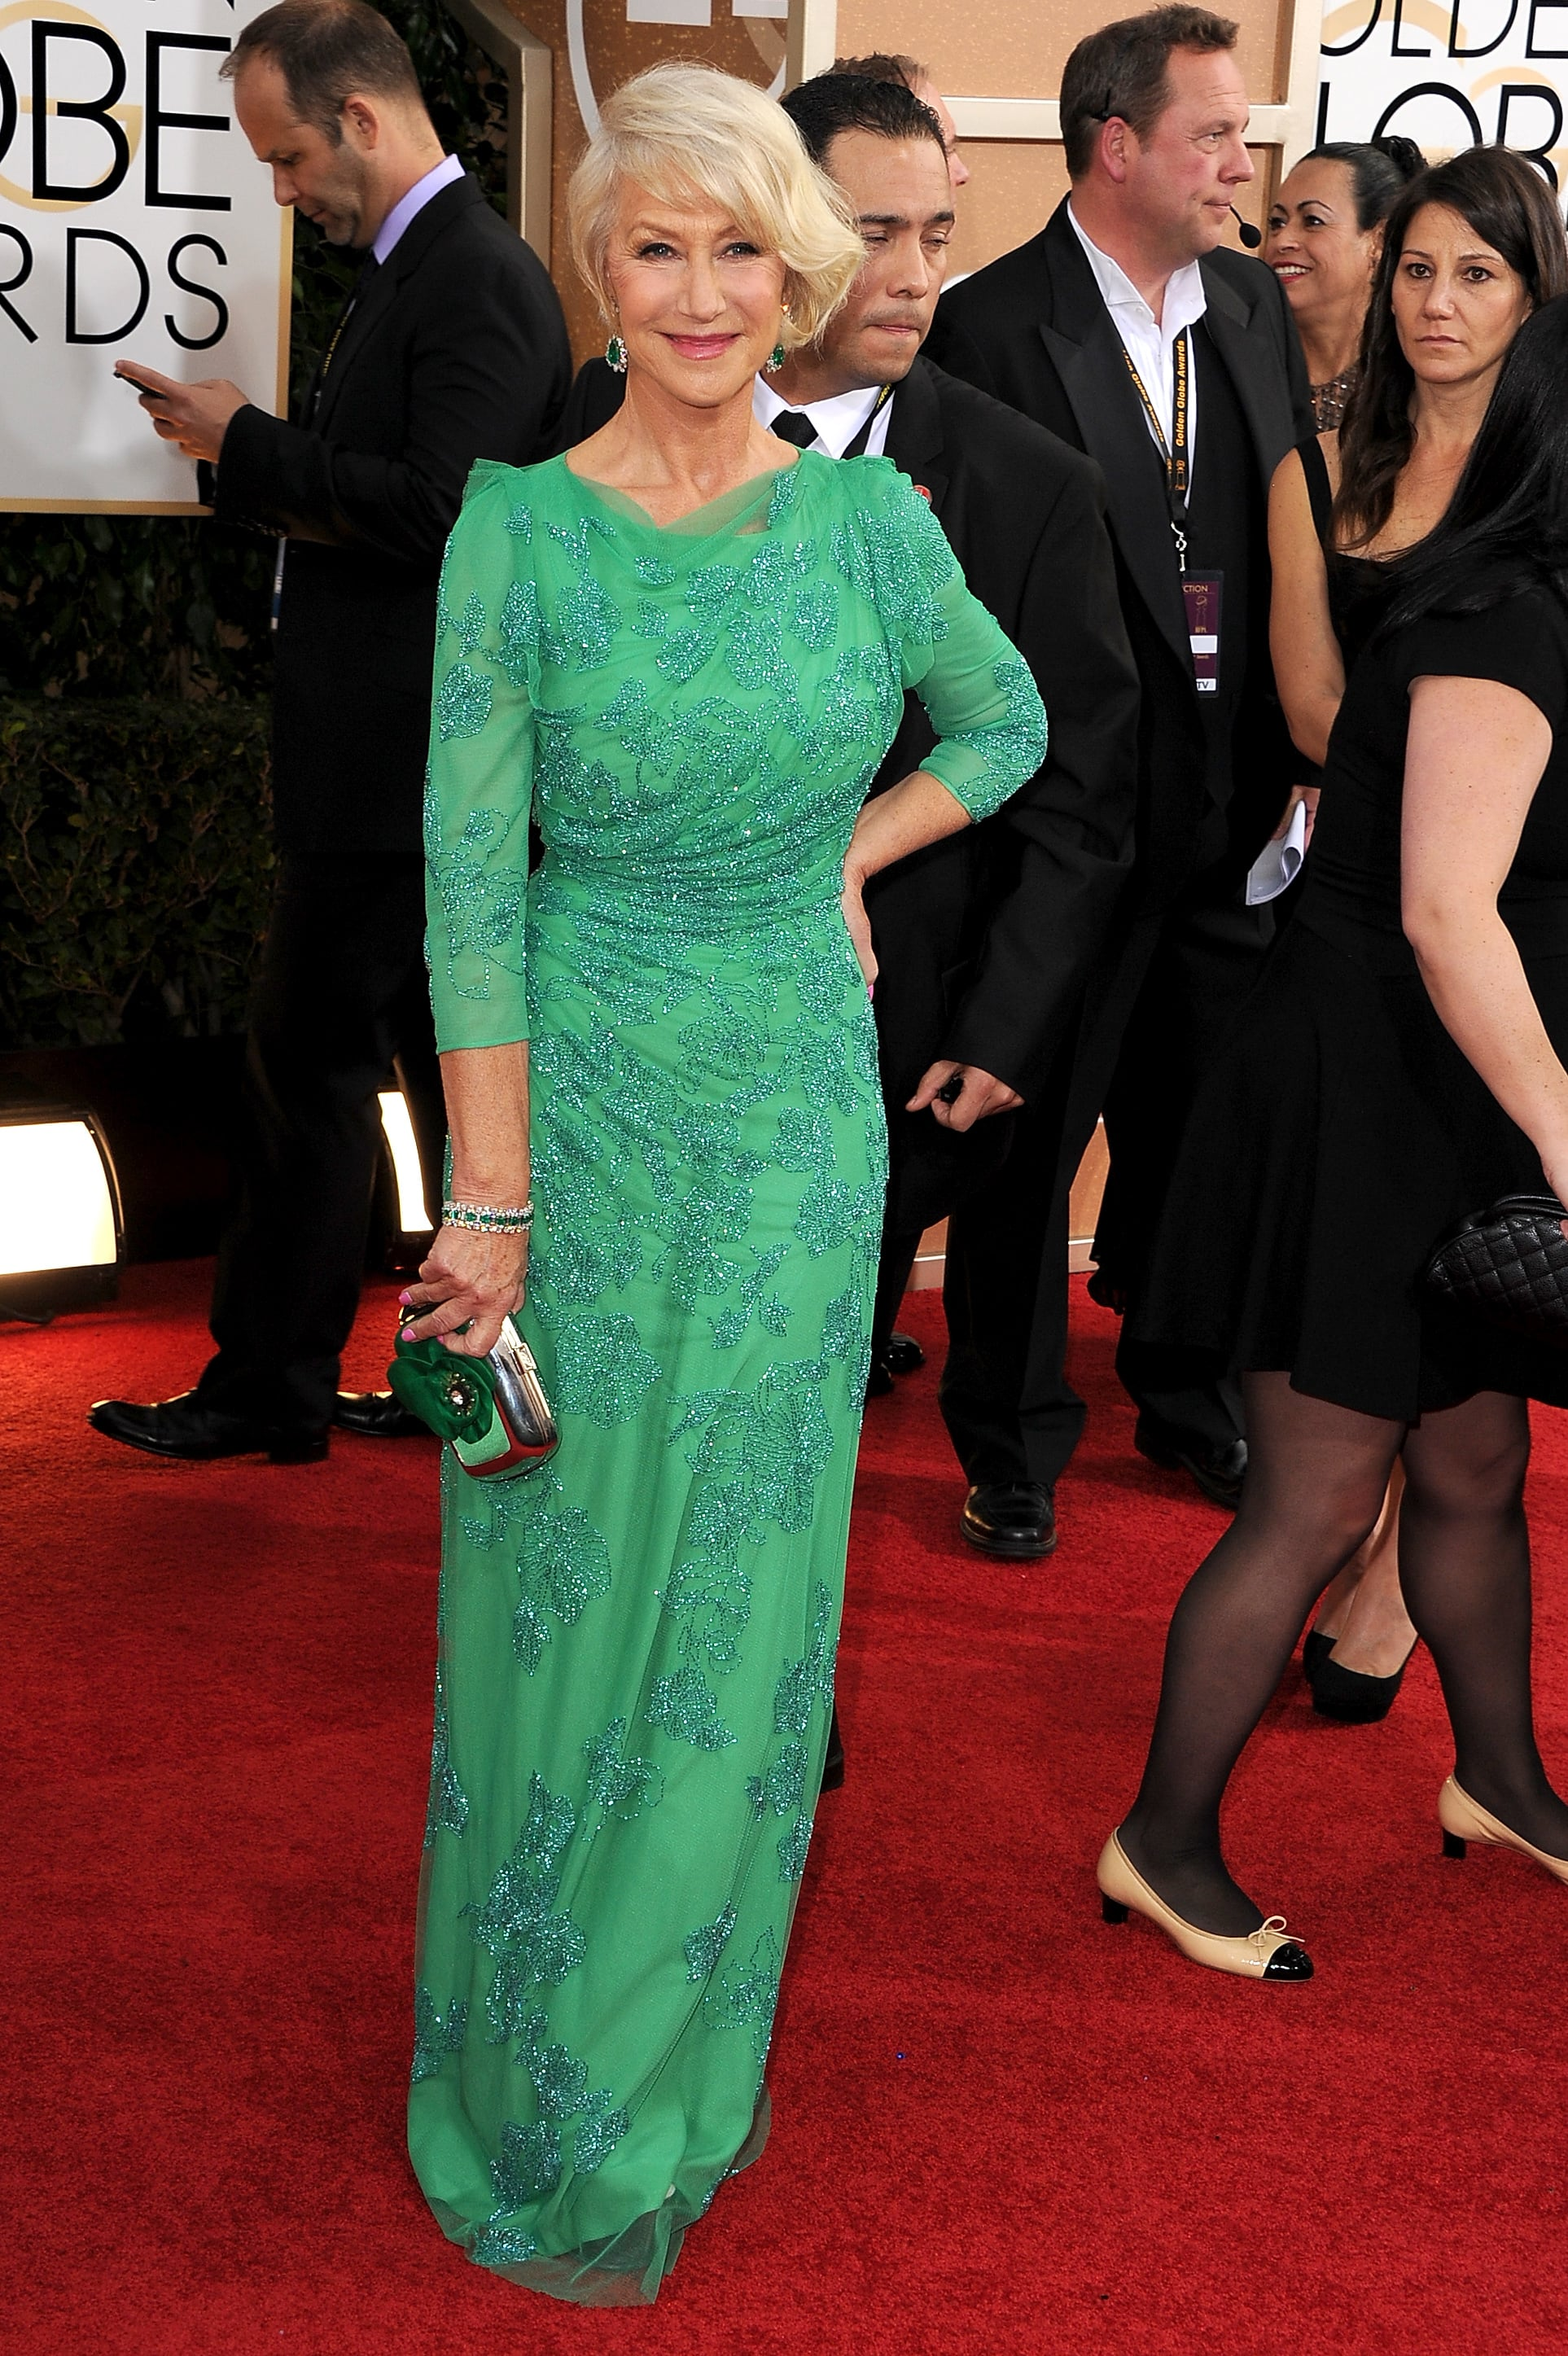 Helen Mirren was a vision in her green gown.